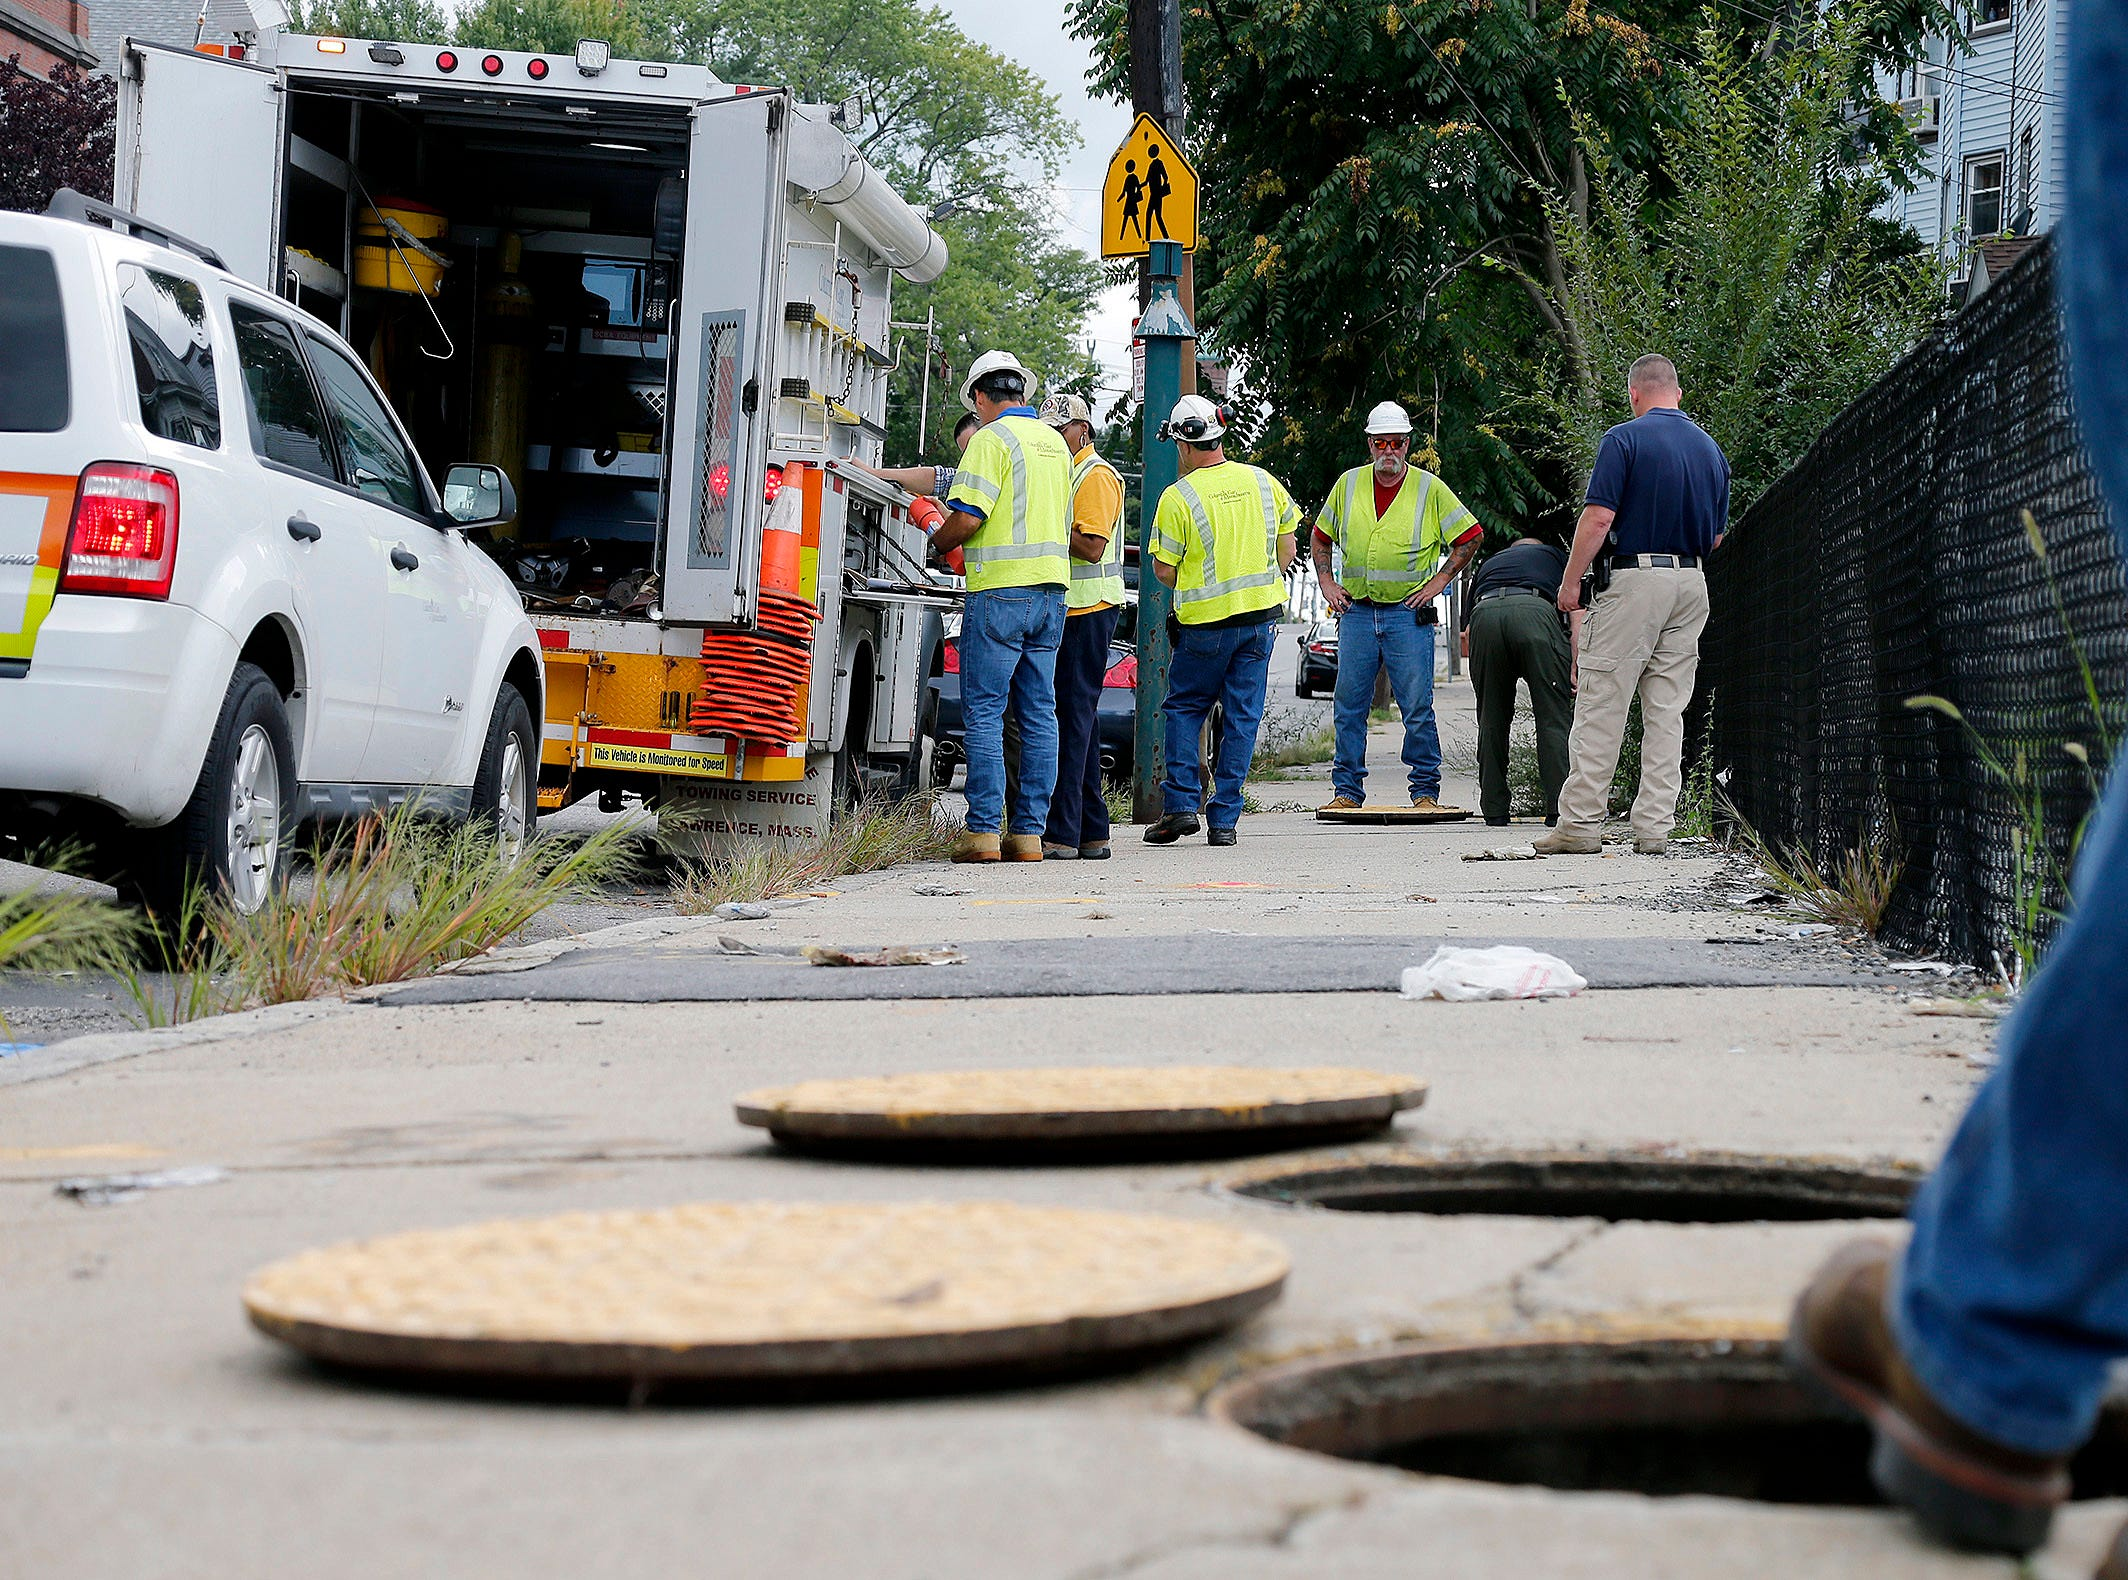 A worker with Columbia gas stands over an open man hole as the crew works to make sure there are no gas leaks at the corner of Parker and Salem Streets in Lawrence, Mass., Friday. Multiple houses were damaged Thursday afternoon from gas explosions and fires triggered by a problem with a gas line that feeds homes.